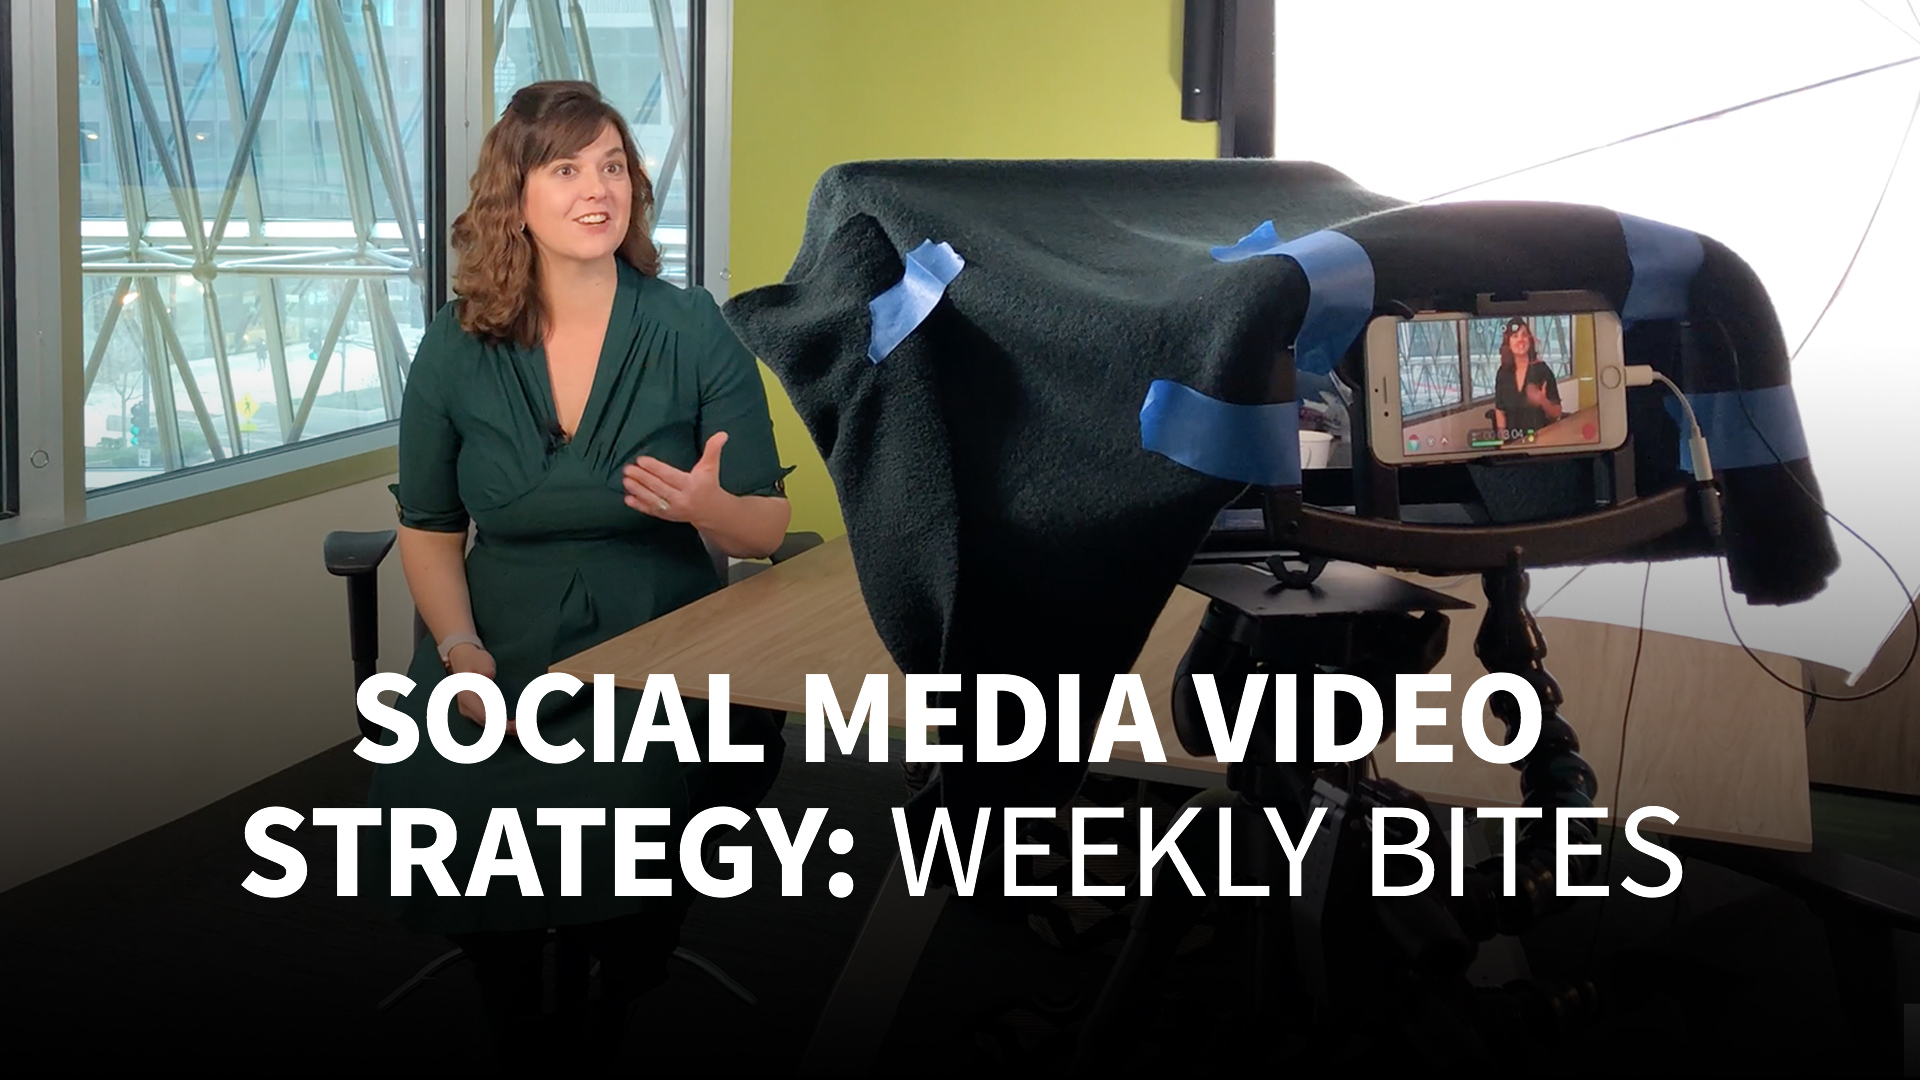 Representing an existing brand: Social Media Video Strategy: Weekly Bites